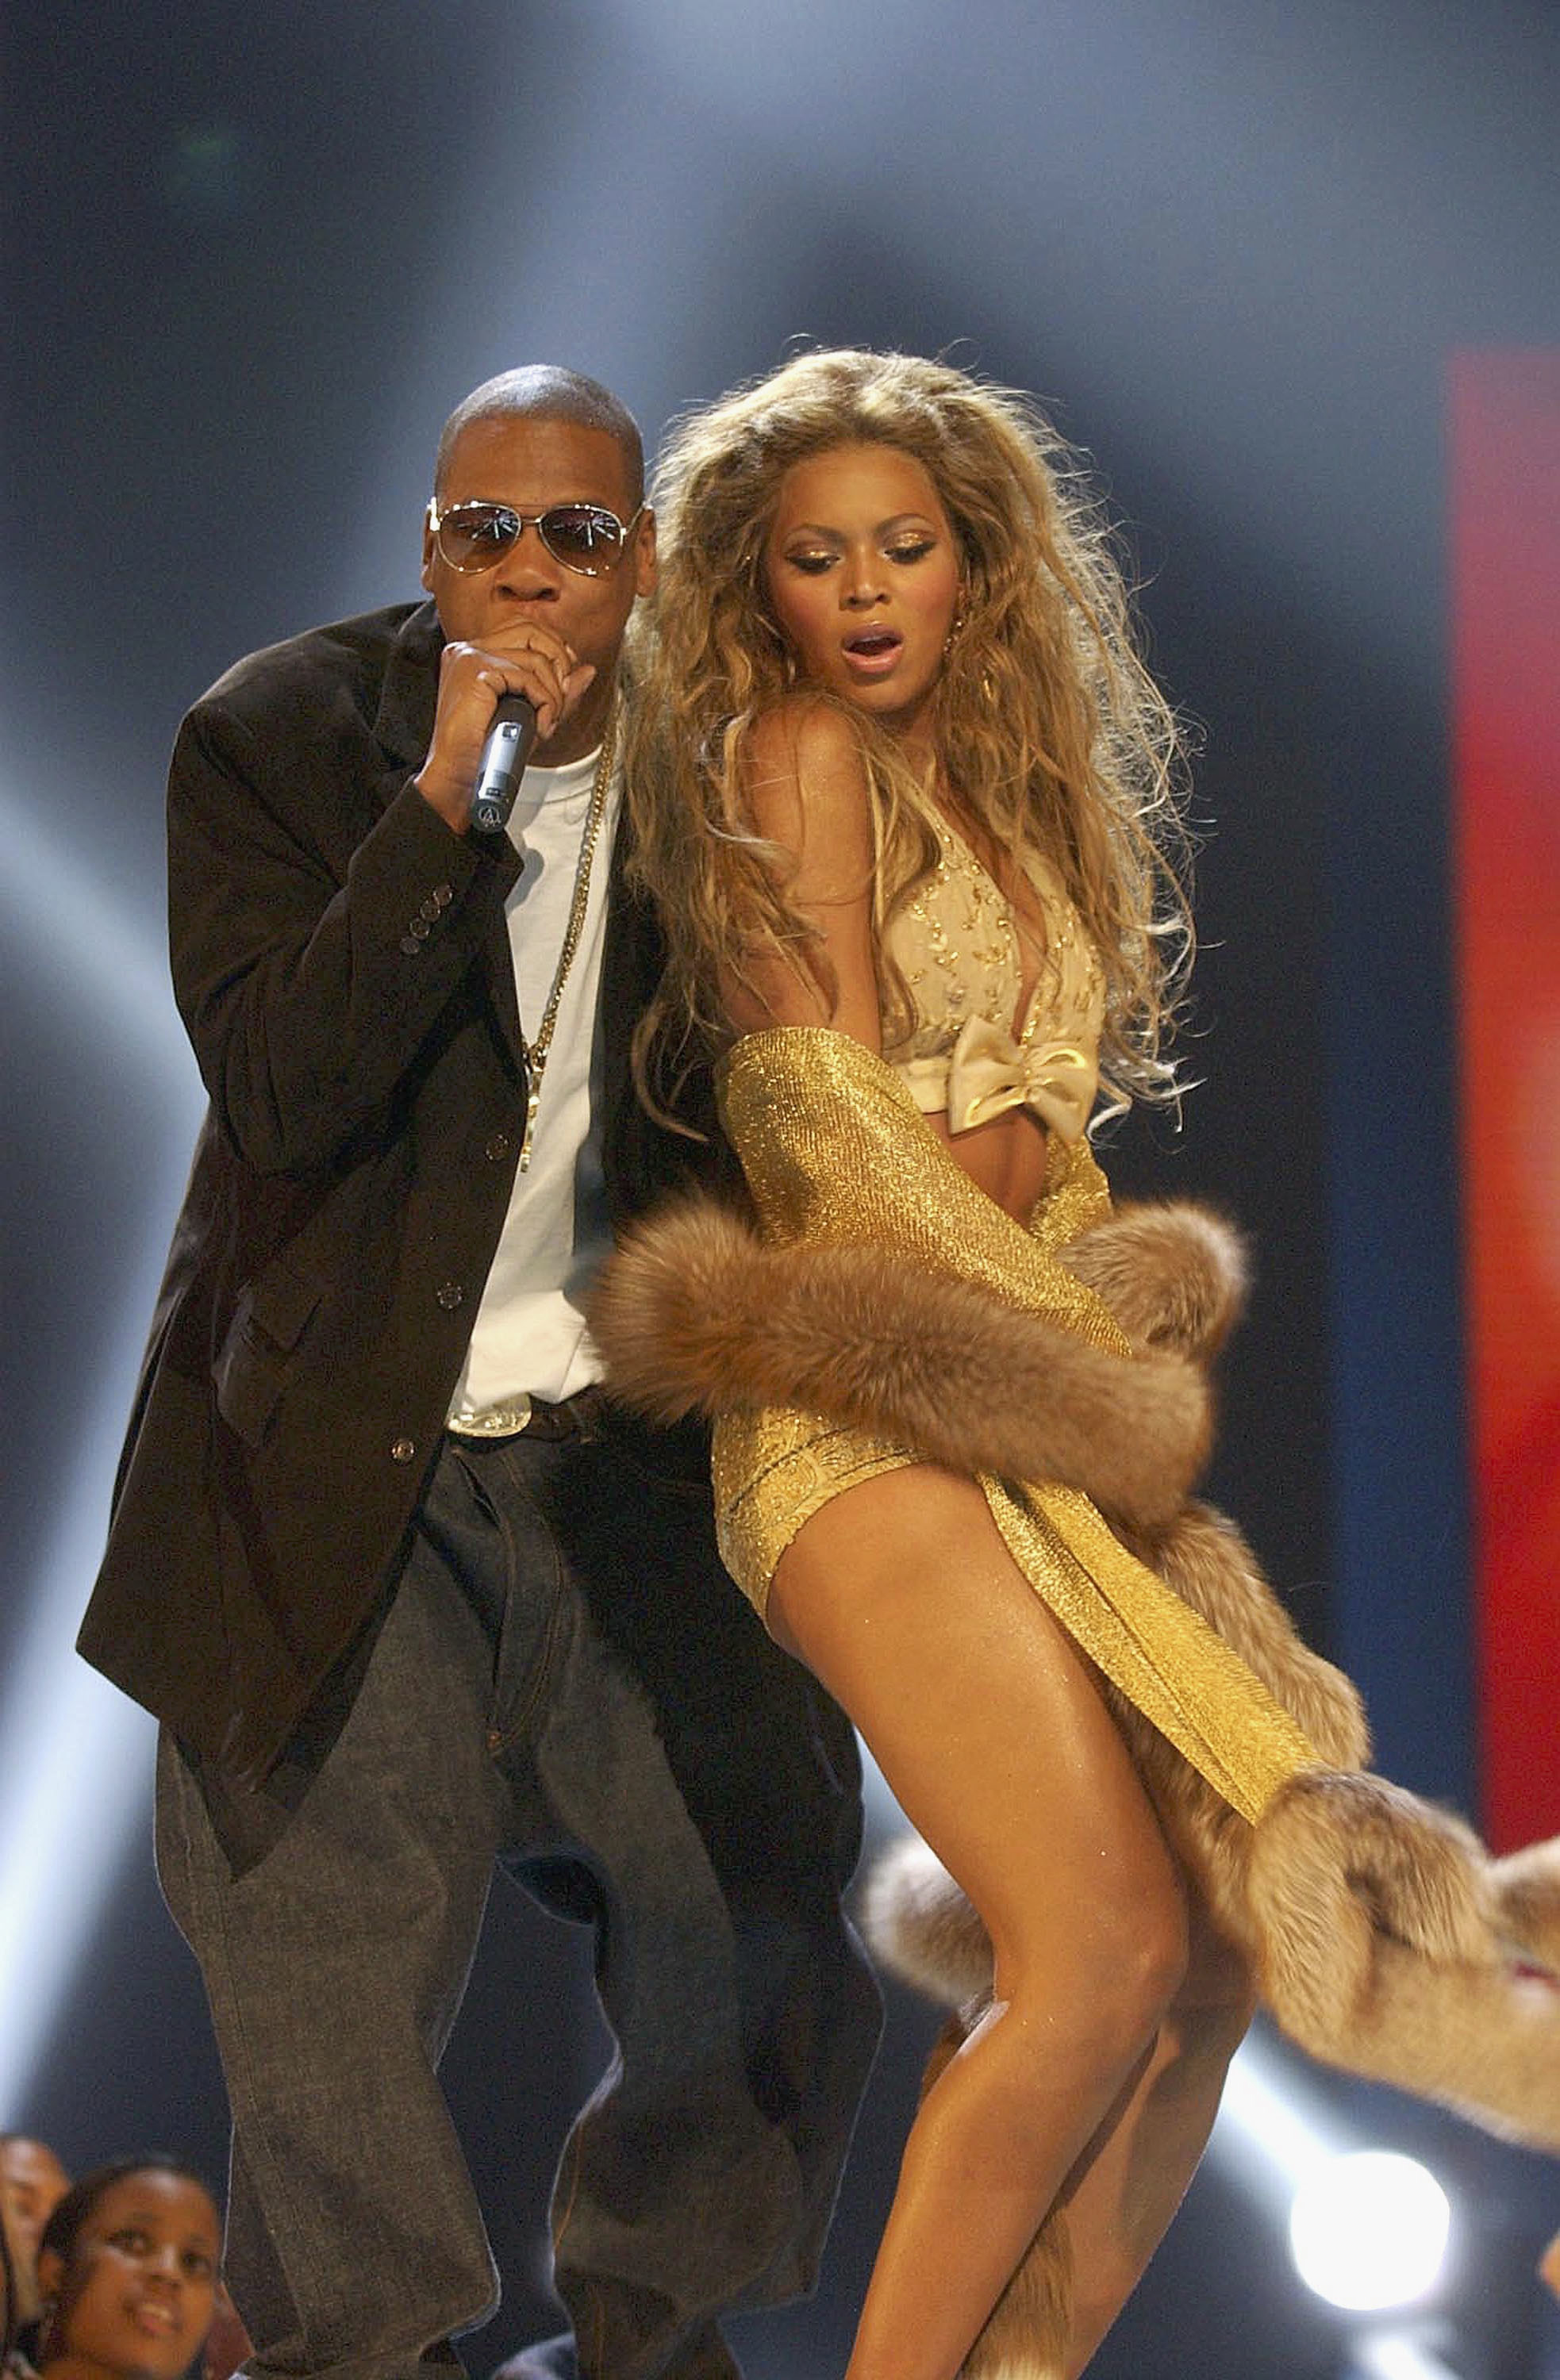 Beyonce and Jay Z performing at the MTV Video Music Awards in New York City on Aug. 28, 2003.